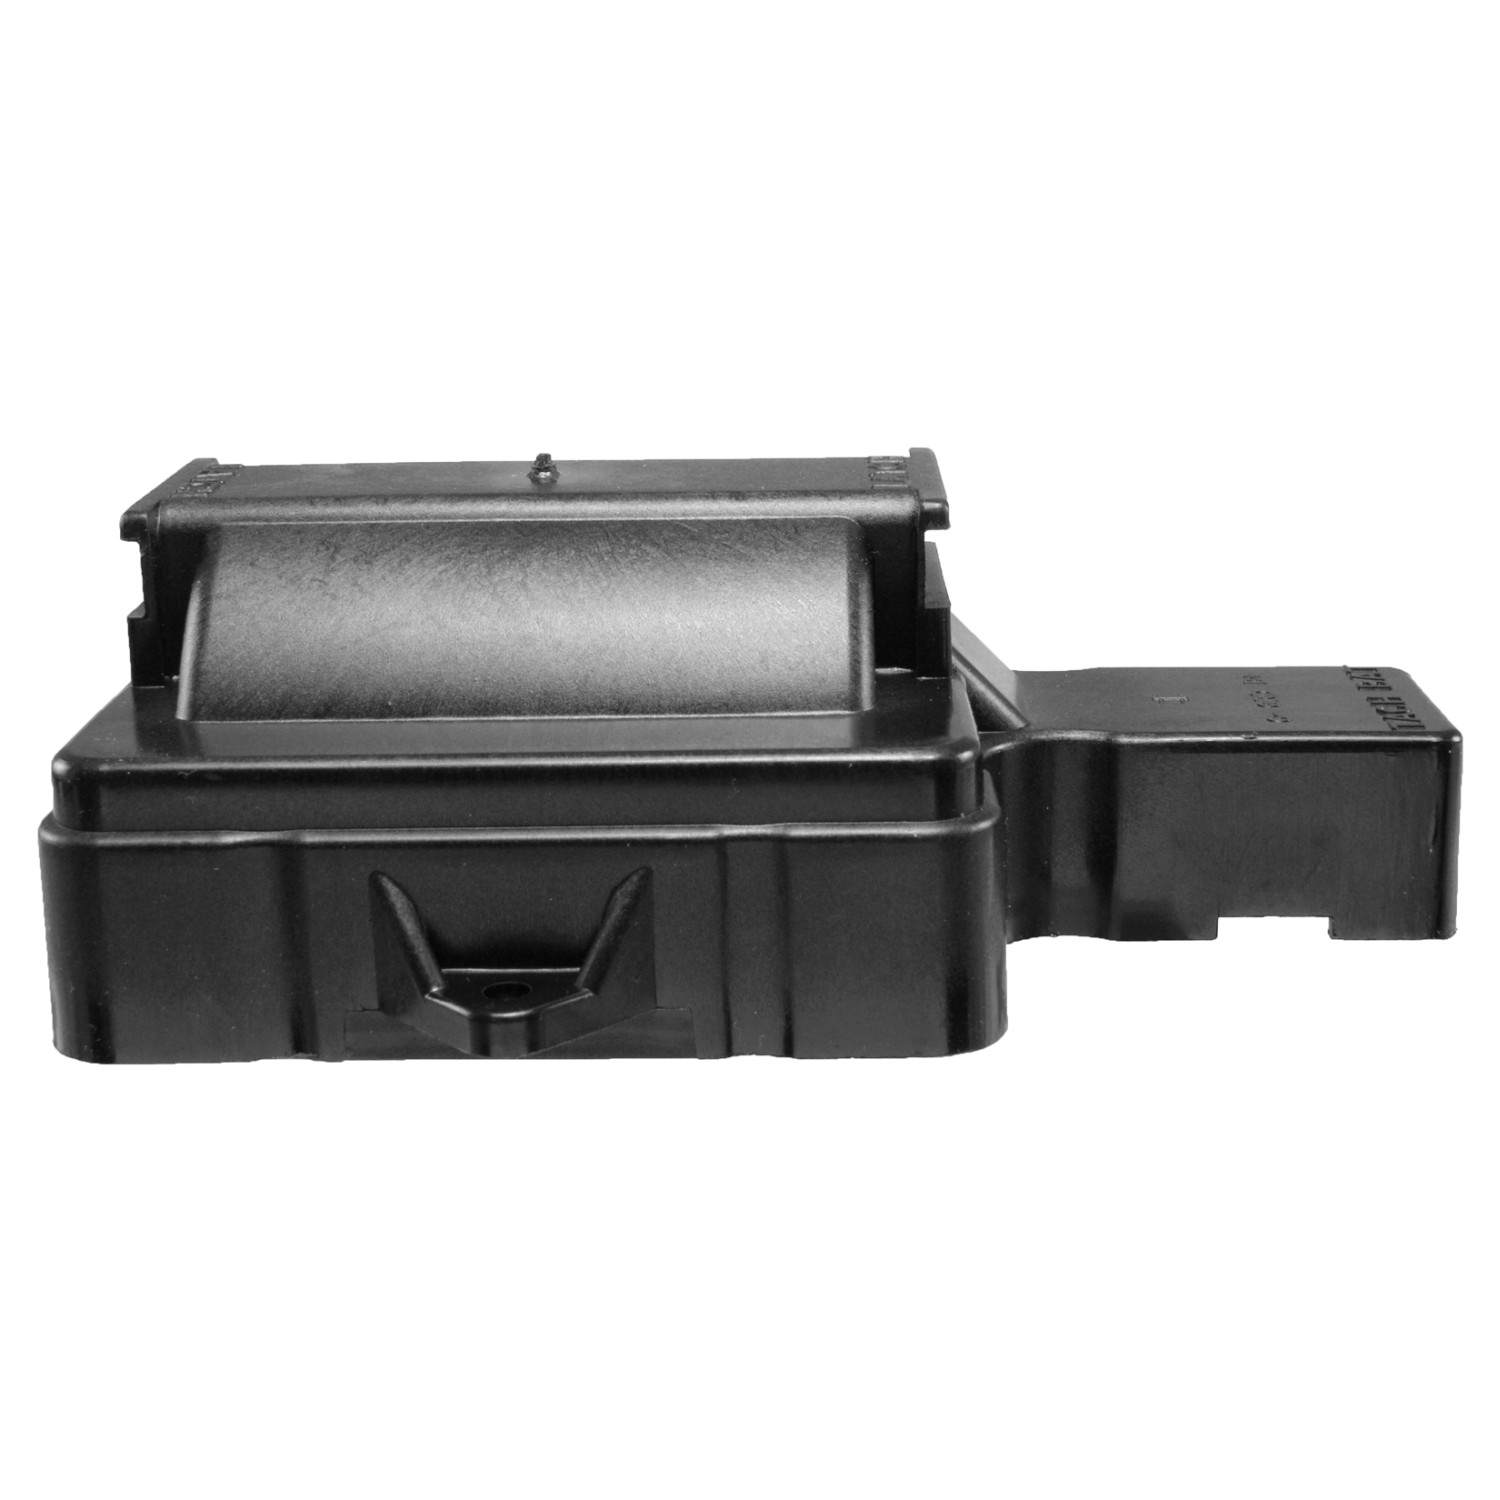 ACDELCO PROFESSIONAL - Distributor Cover - DCC 1875960X